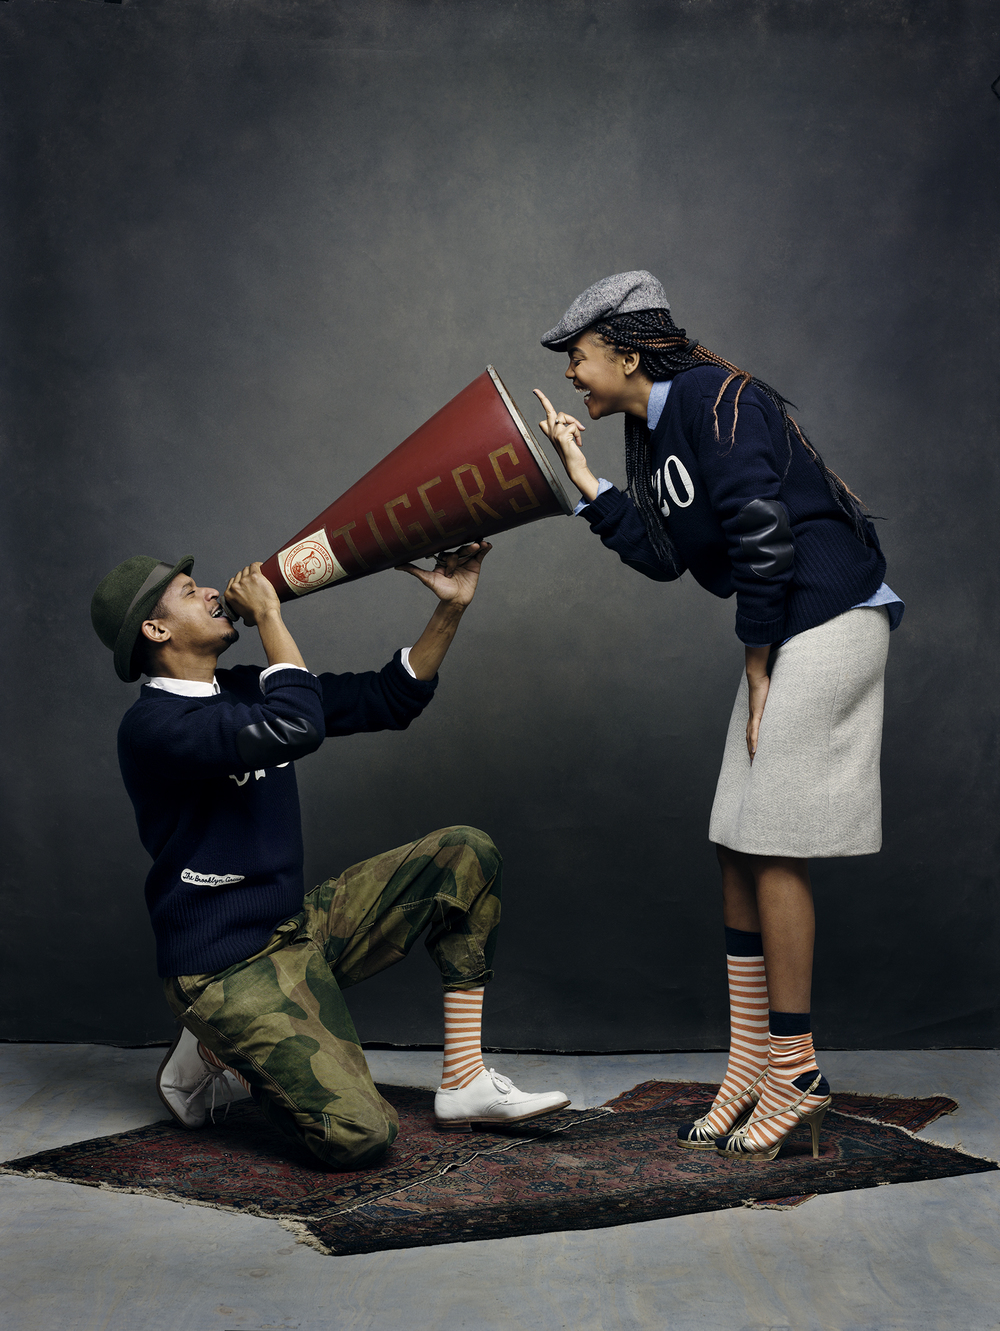 Chef Roble and his sister Justine